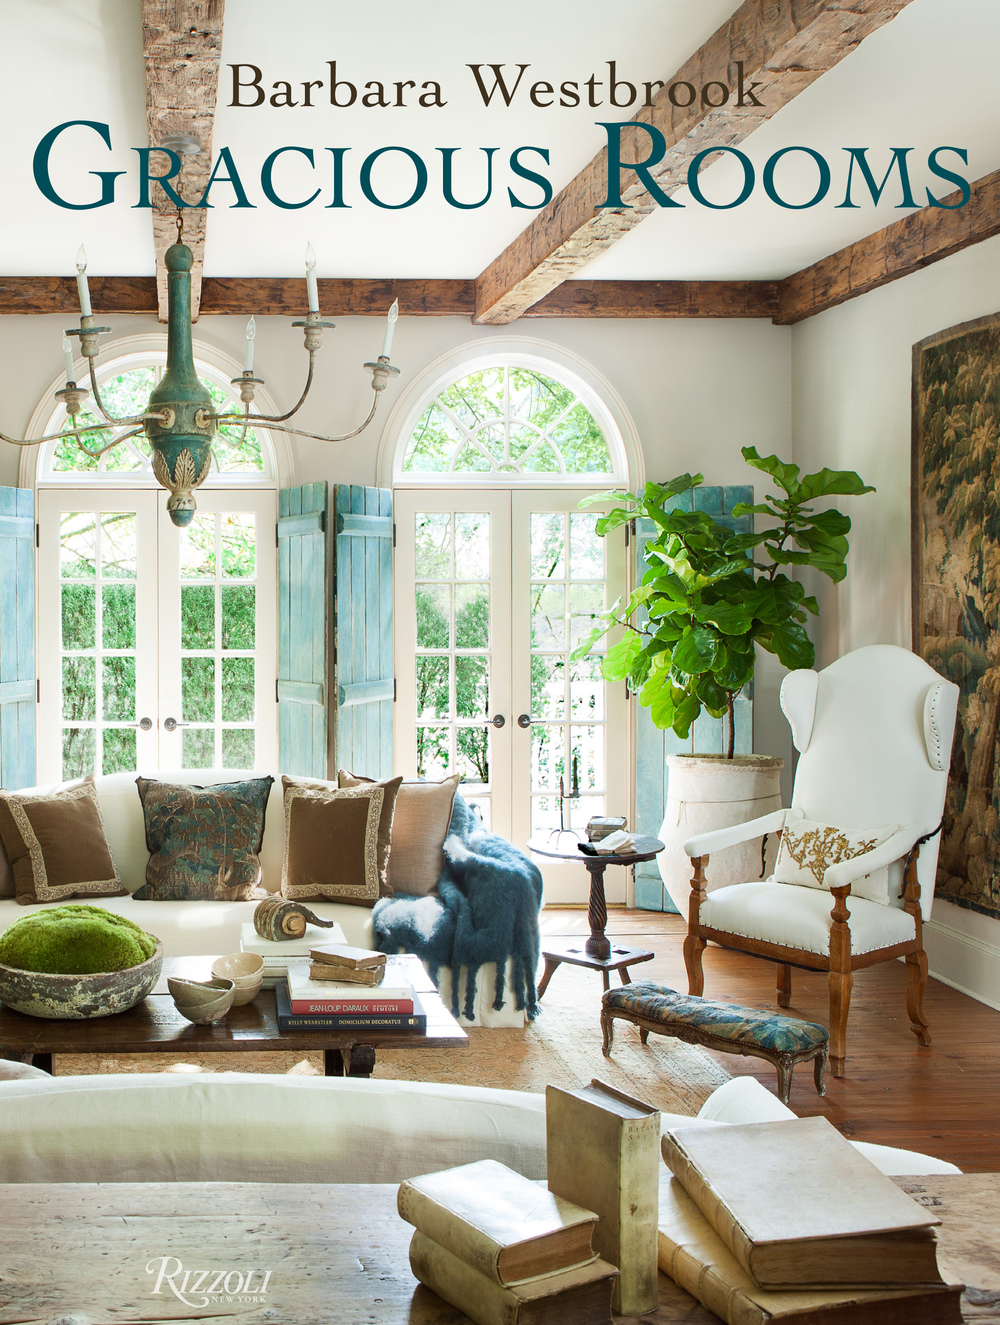 Barbara Westbrook, Gracious Rooms. Published by Rizzoli, New York 2015